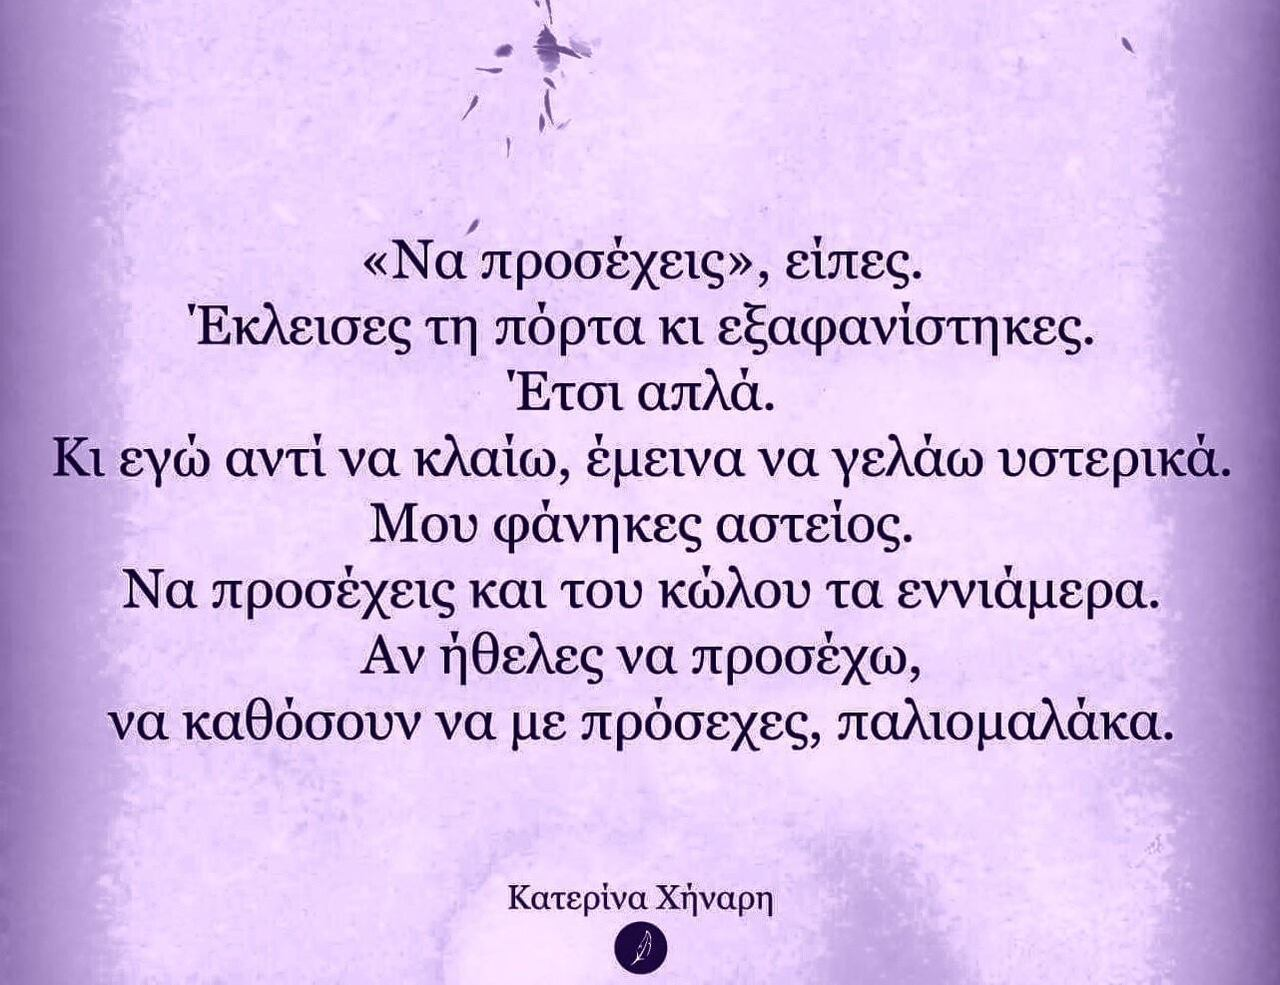 38 images about greek quotes on We Heart It